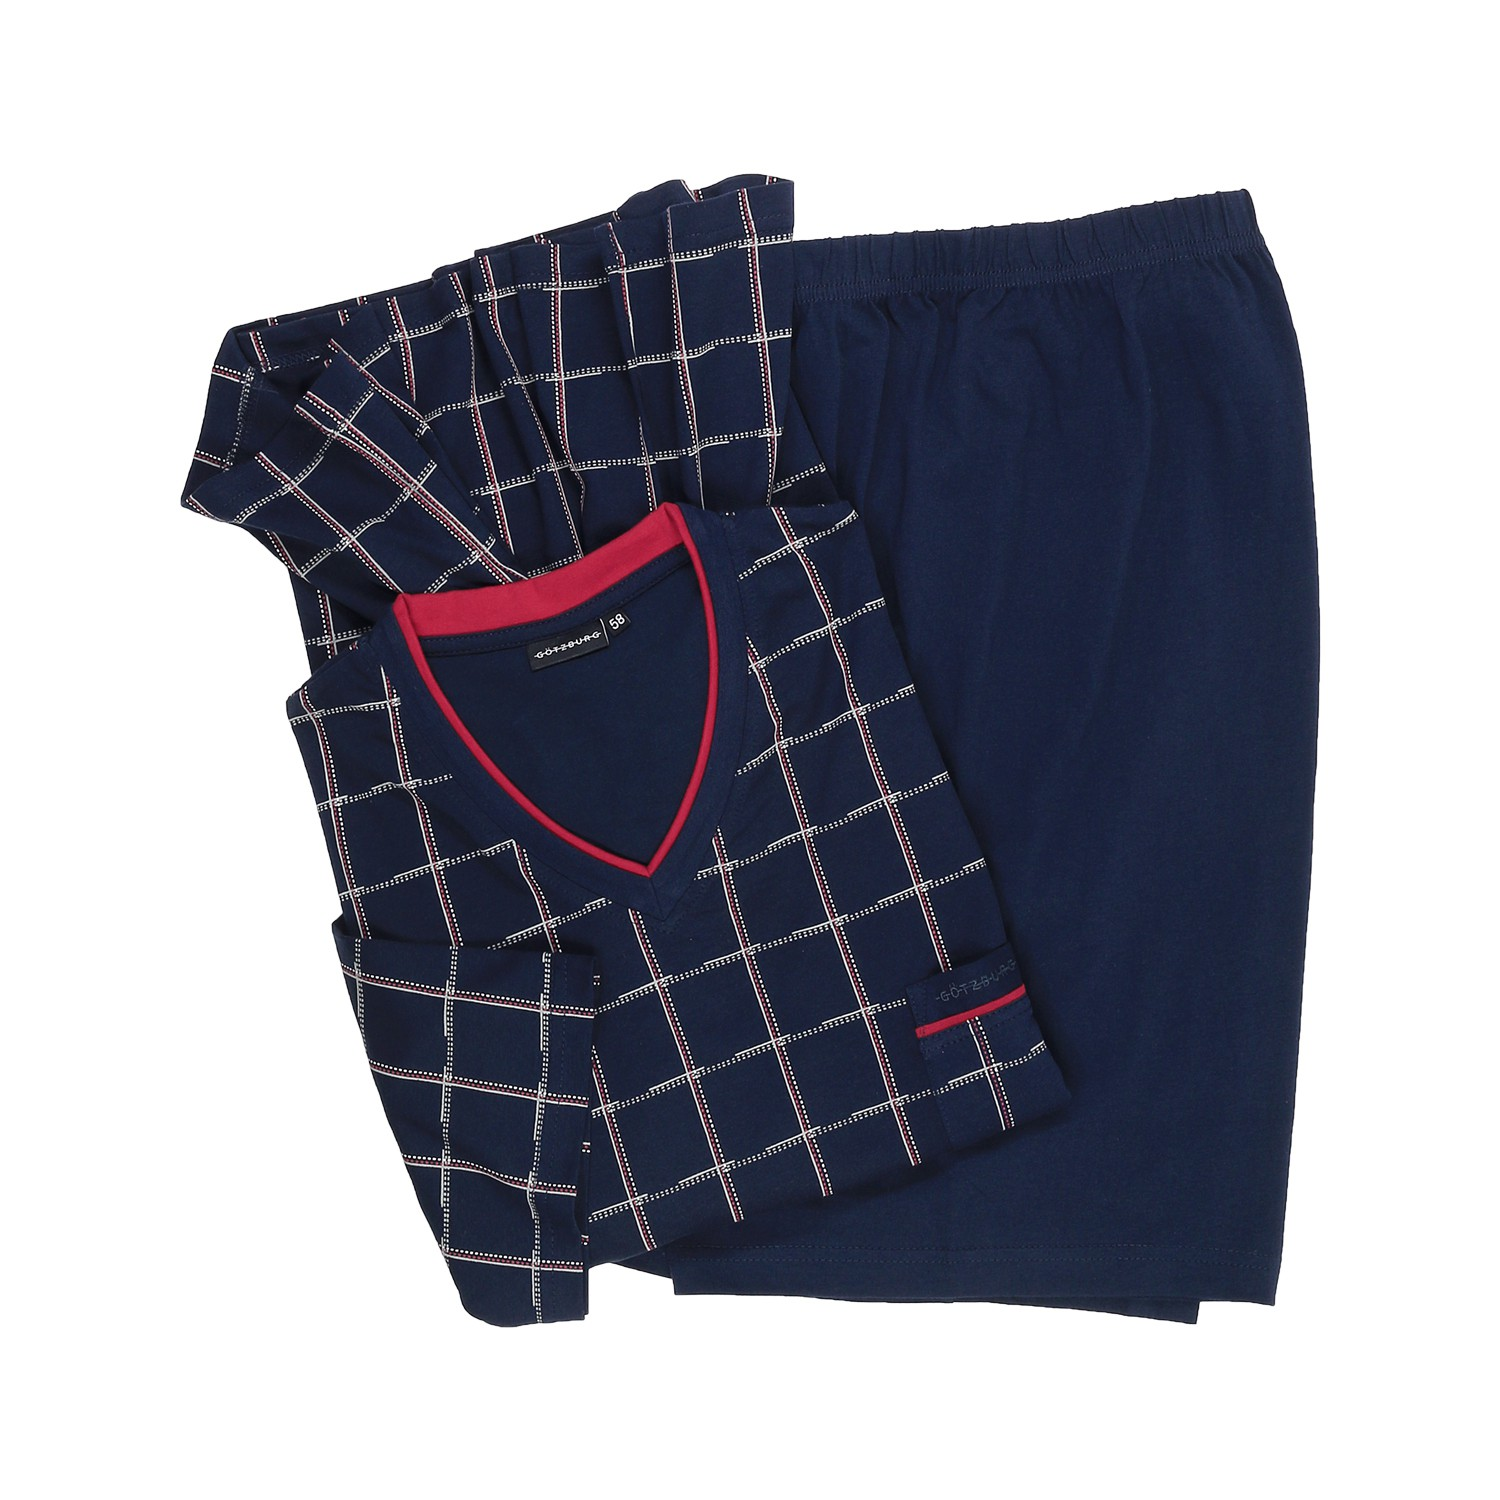 Detail Image to Short pyjama in navy by Götzburg up to oversize 5XL